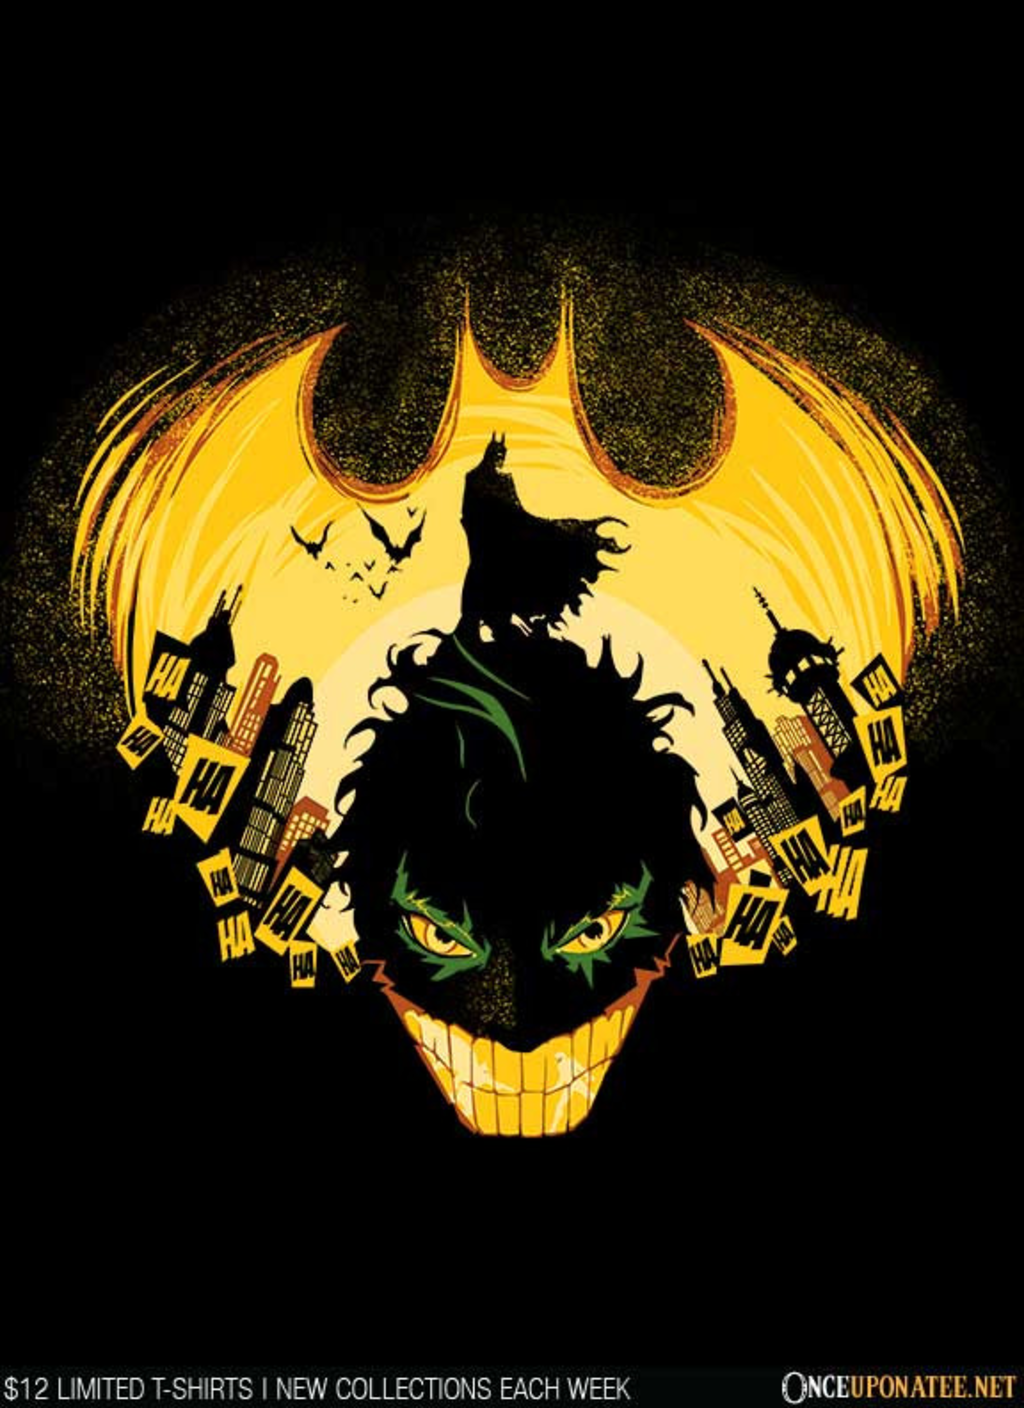 Once Upon a Tee: Dark Knightmare